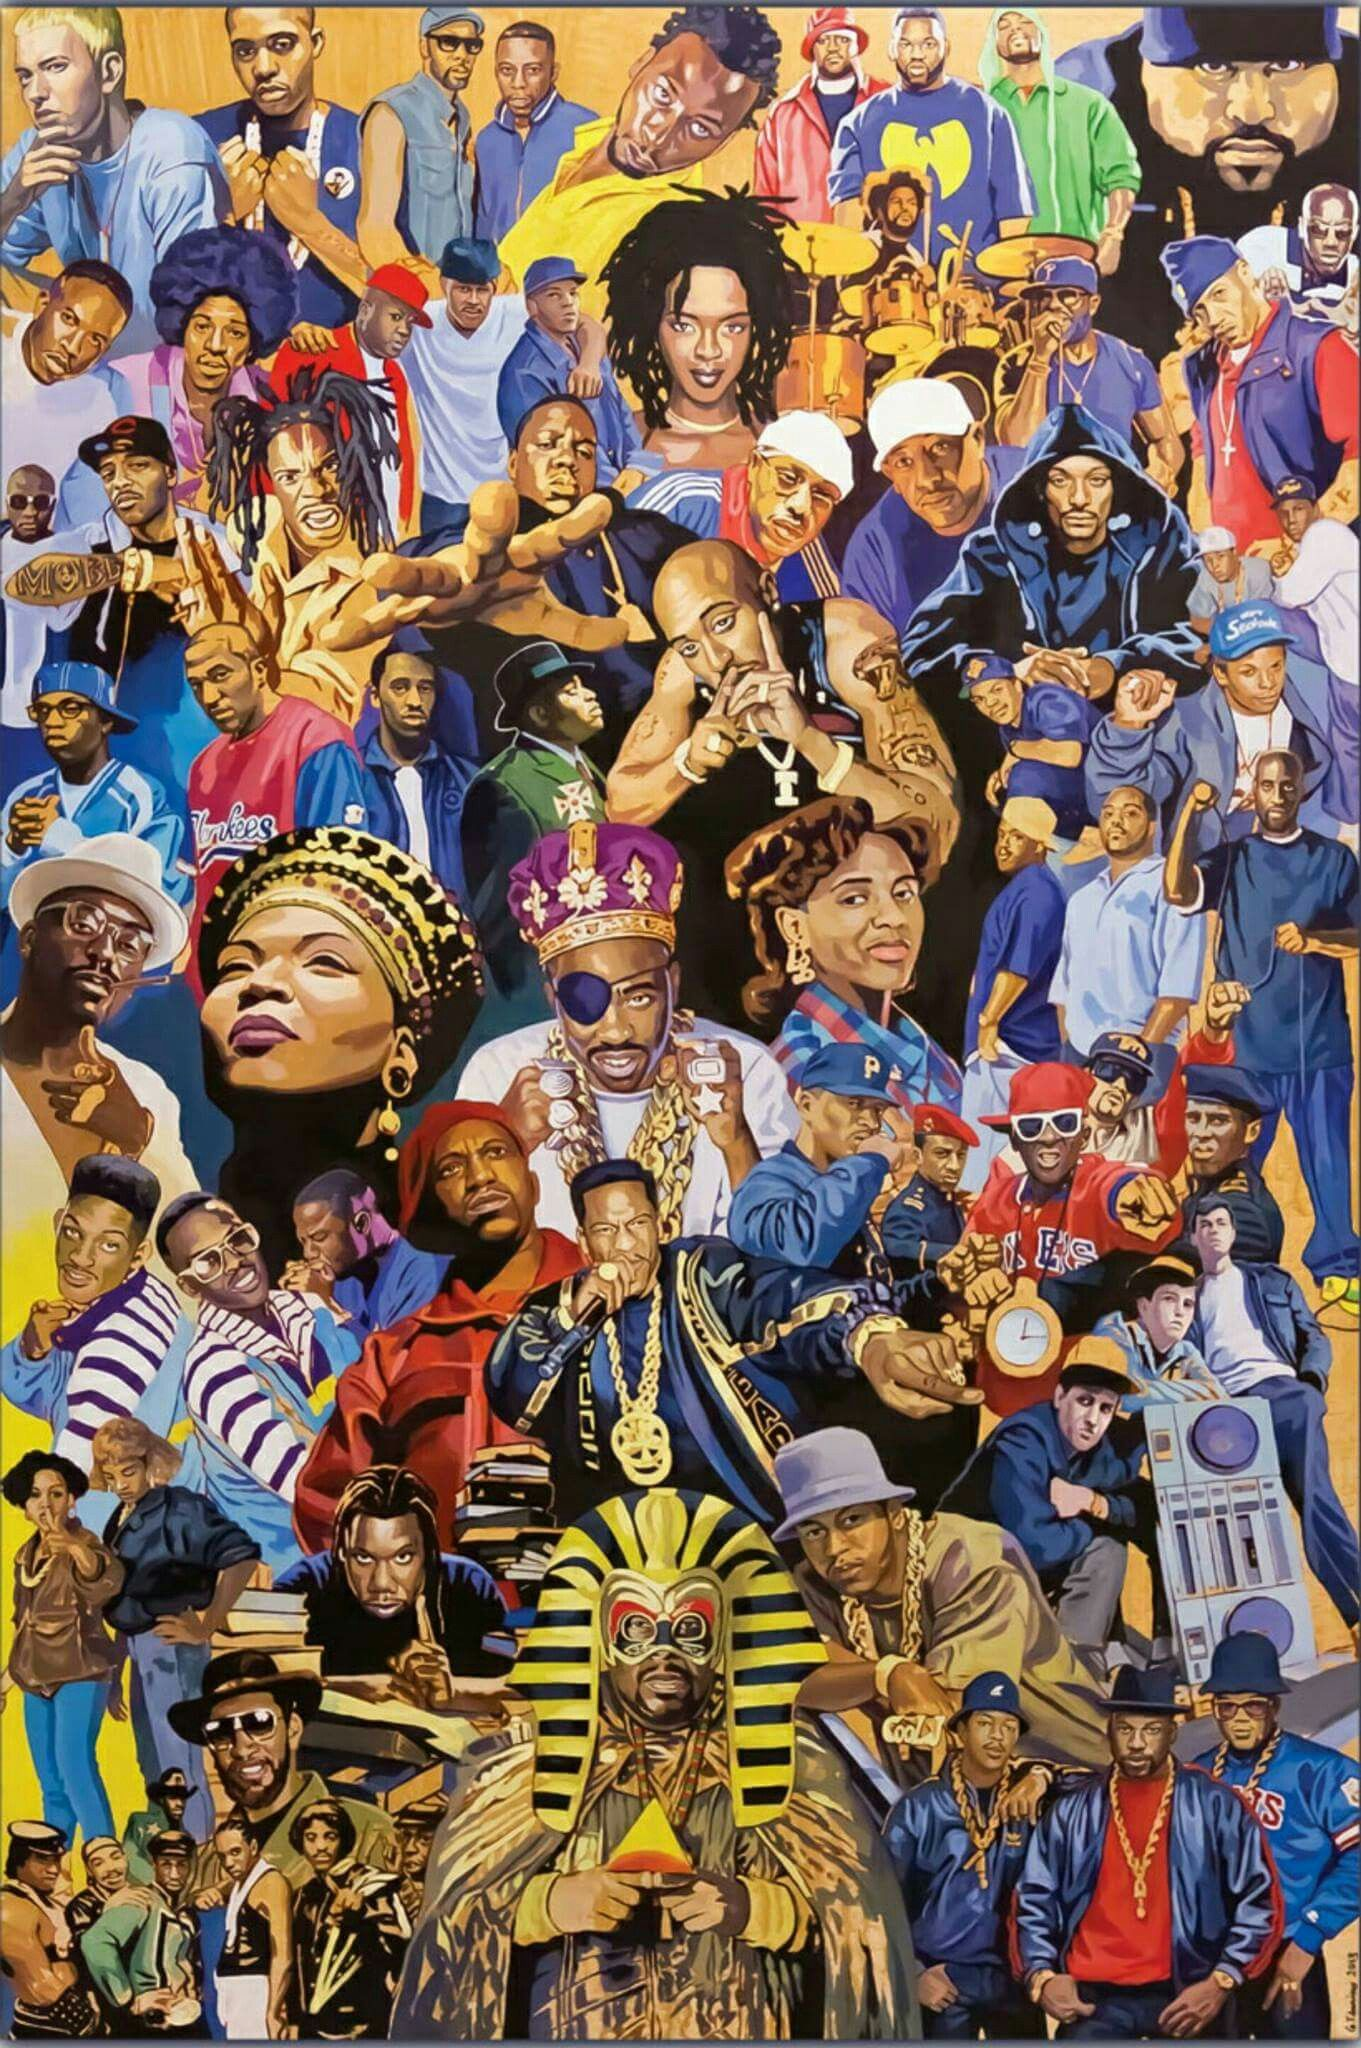 Hip Hop Fashion: The Art Of Hip Hop. #HipHopLegends